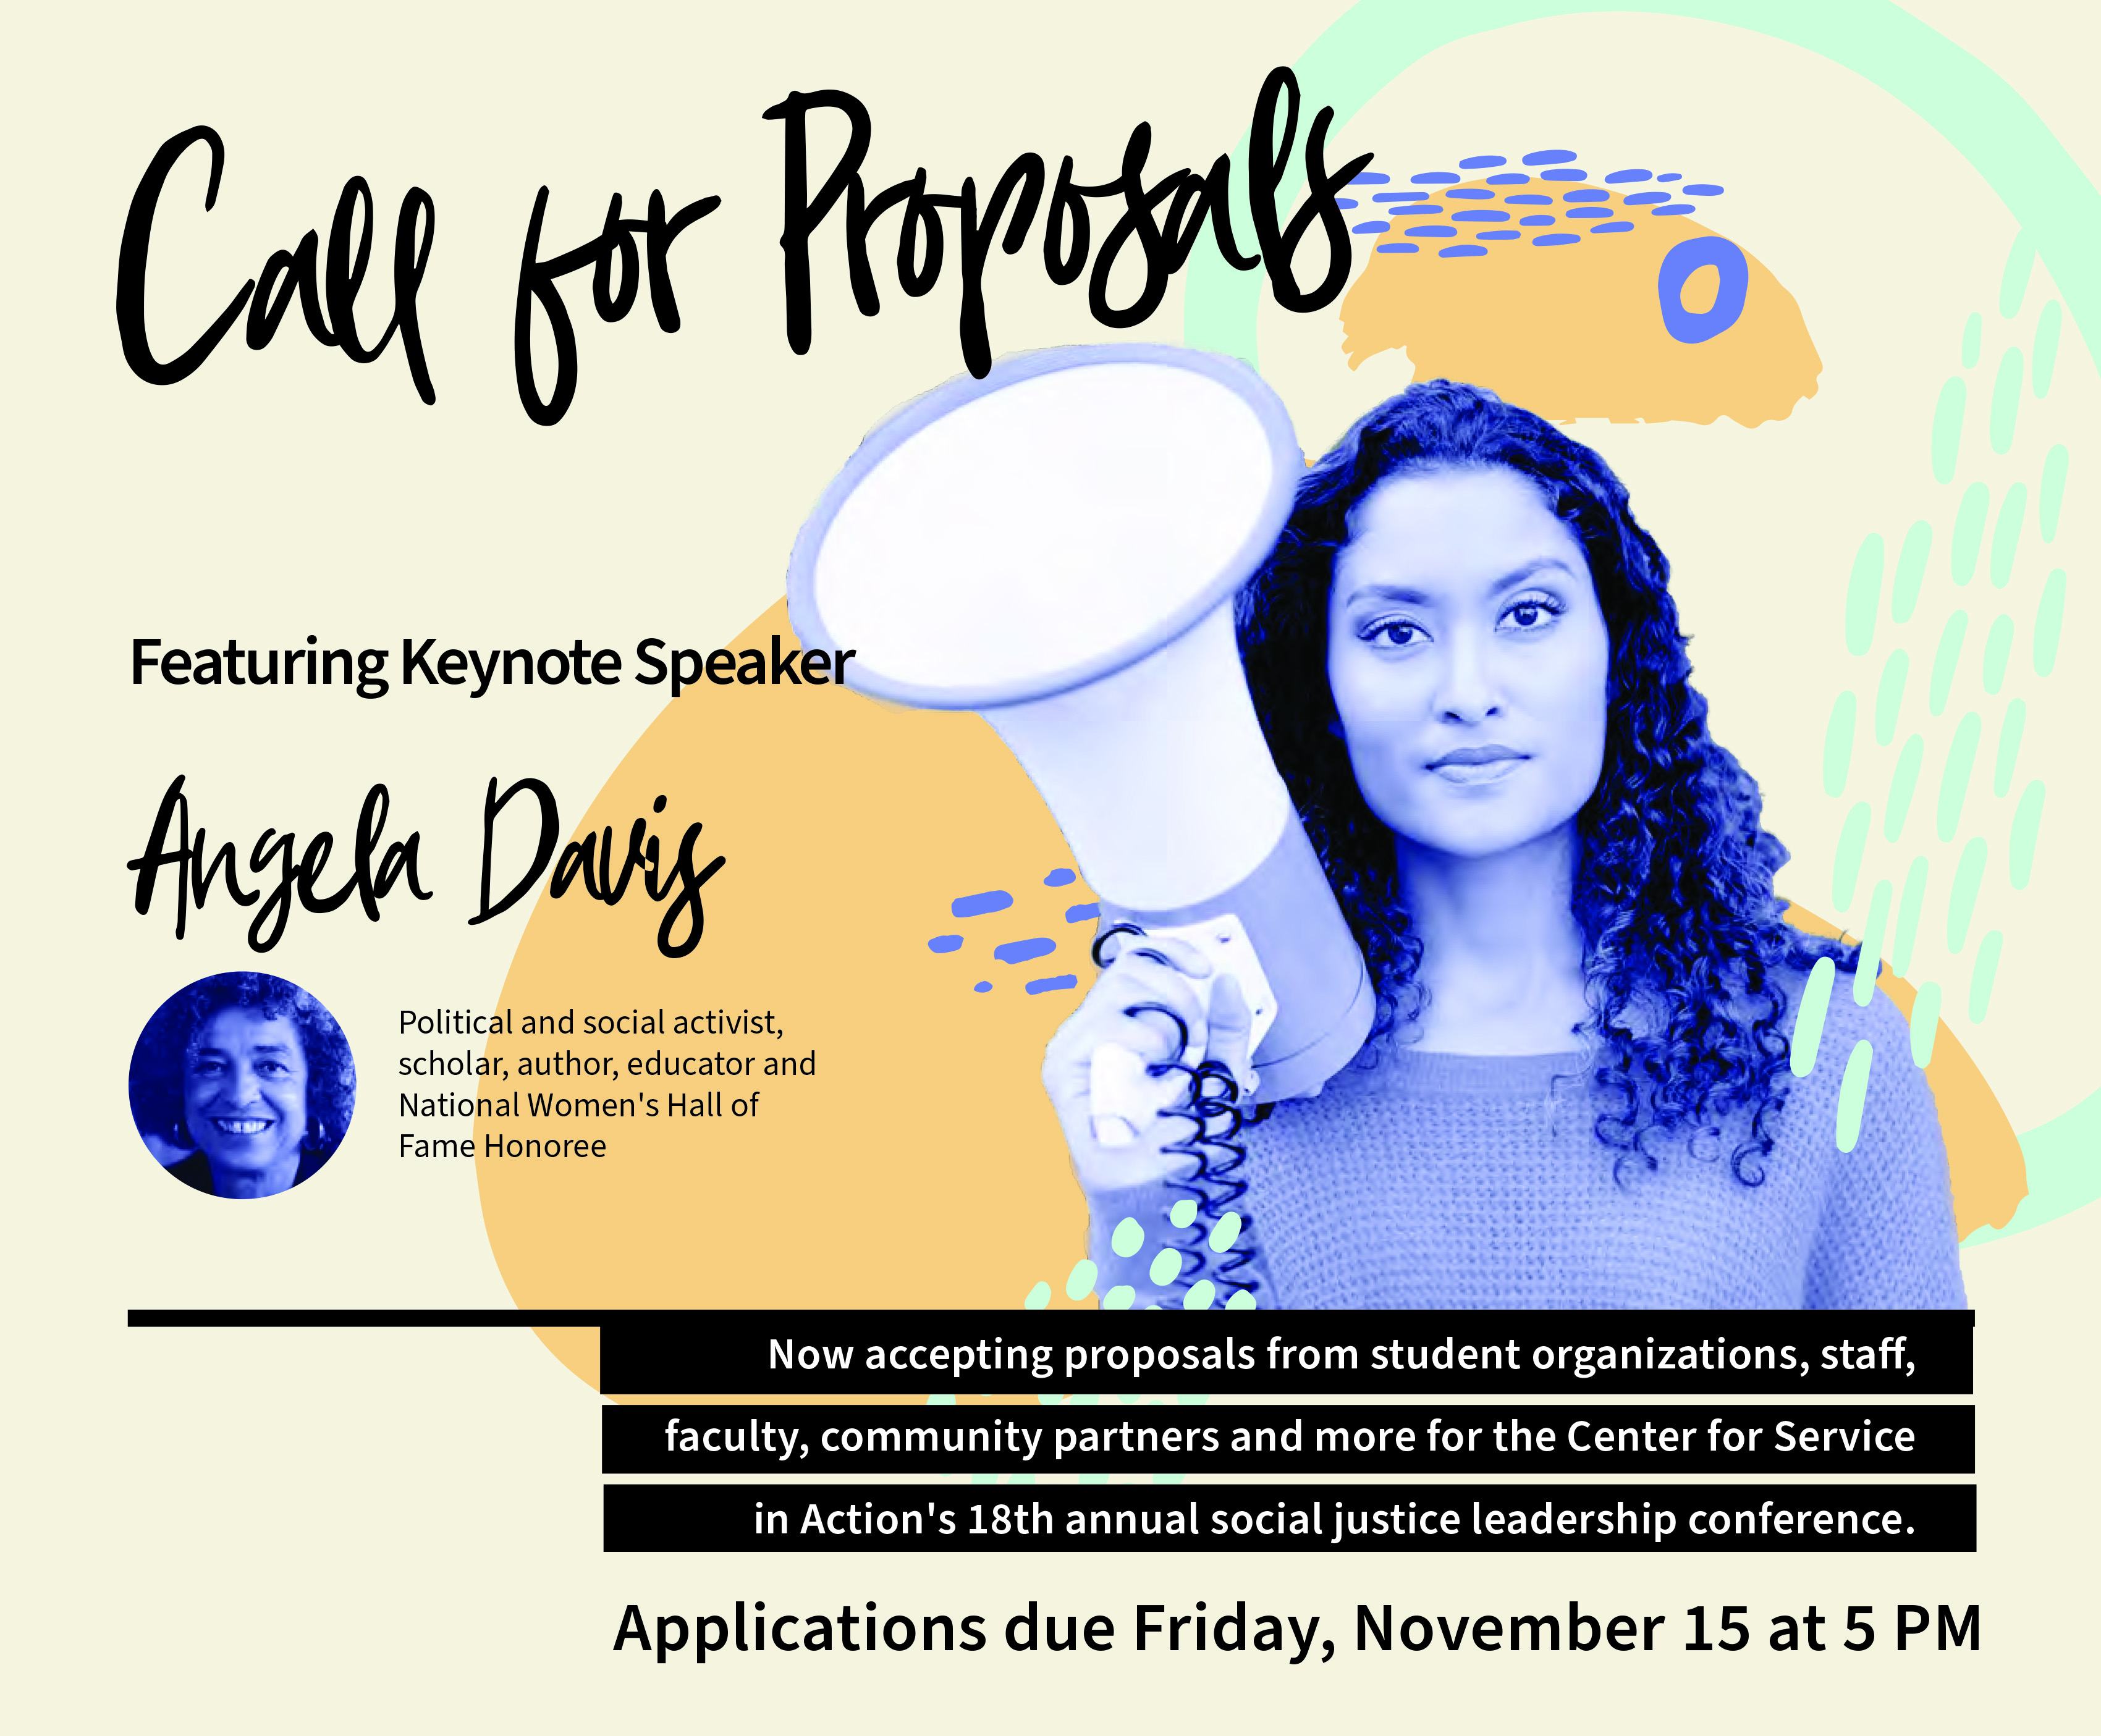 Change the Status Quo Call for Proposals Poster Image featuring Keynote Speaker Angela Davis